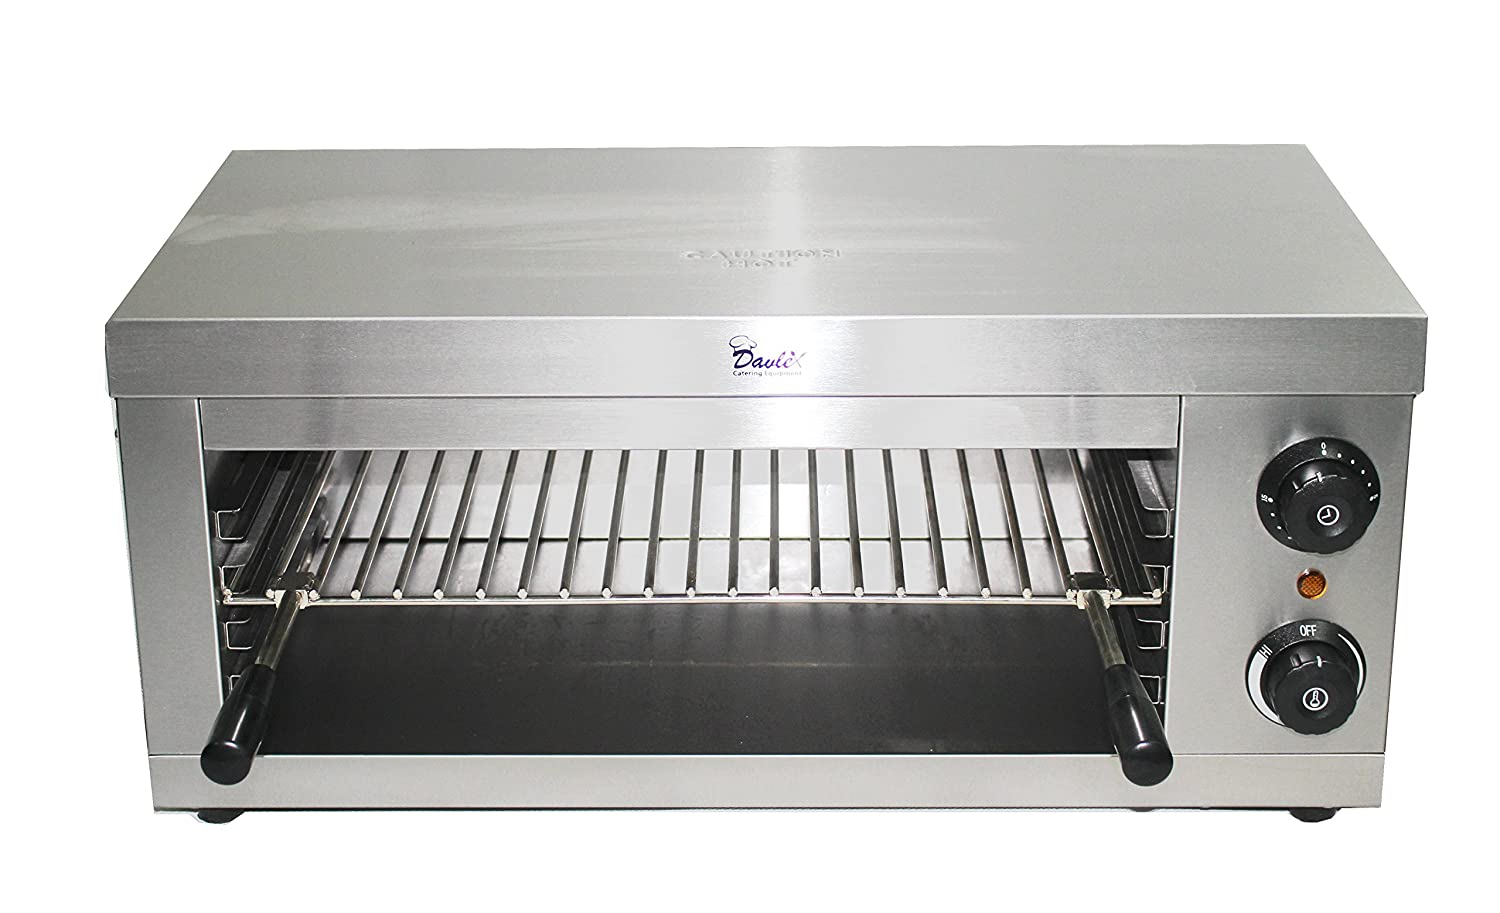 Commercial Salamander Grill, Eye Level Toaster, Free standing Grill ...